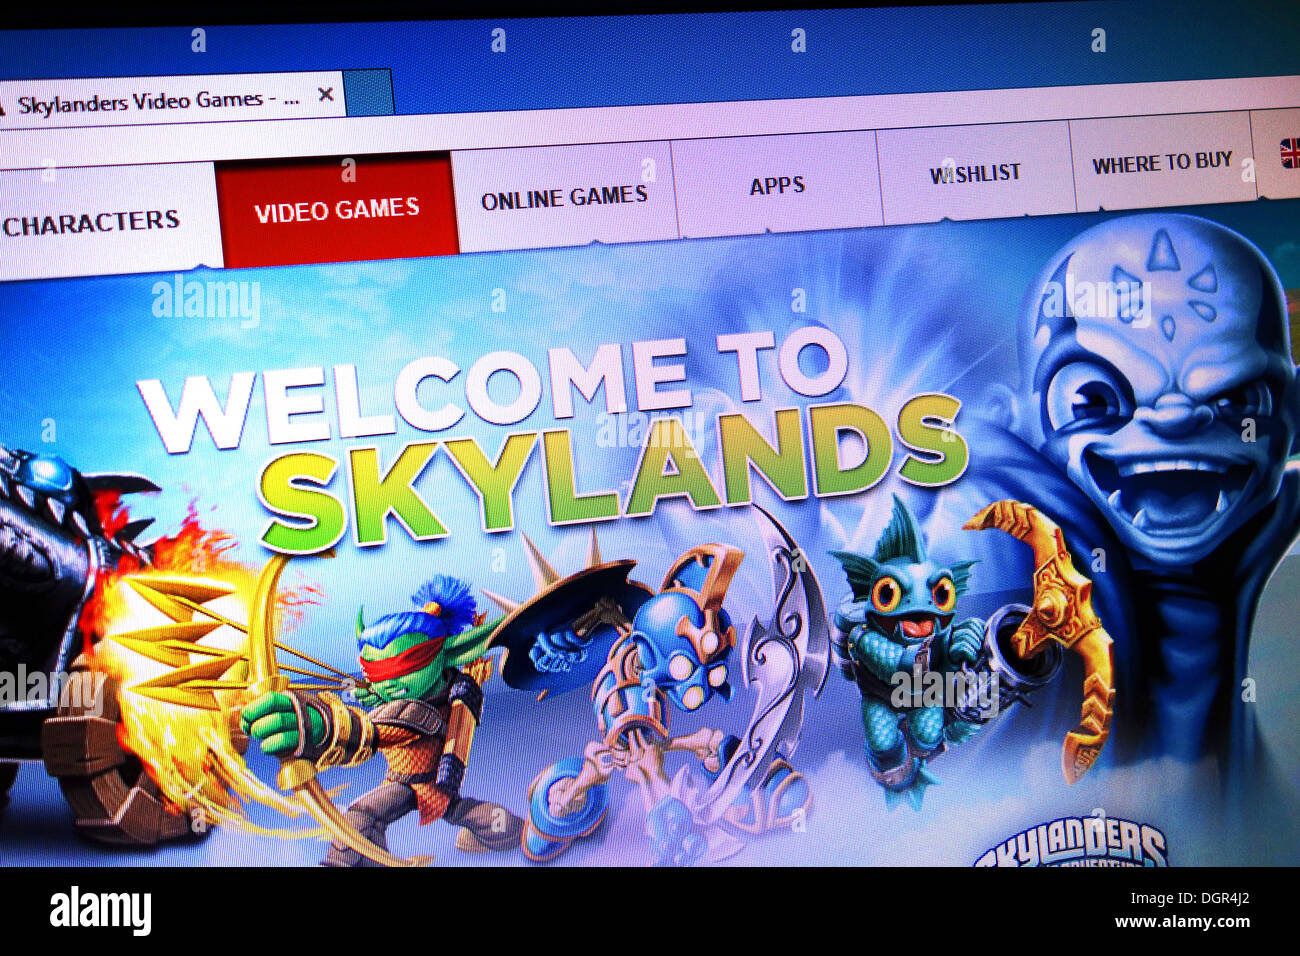 Jeu en ligne skylands Photo Stock